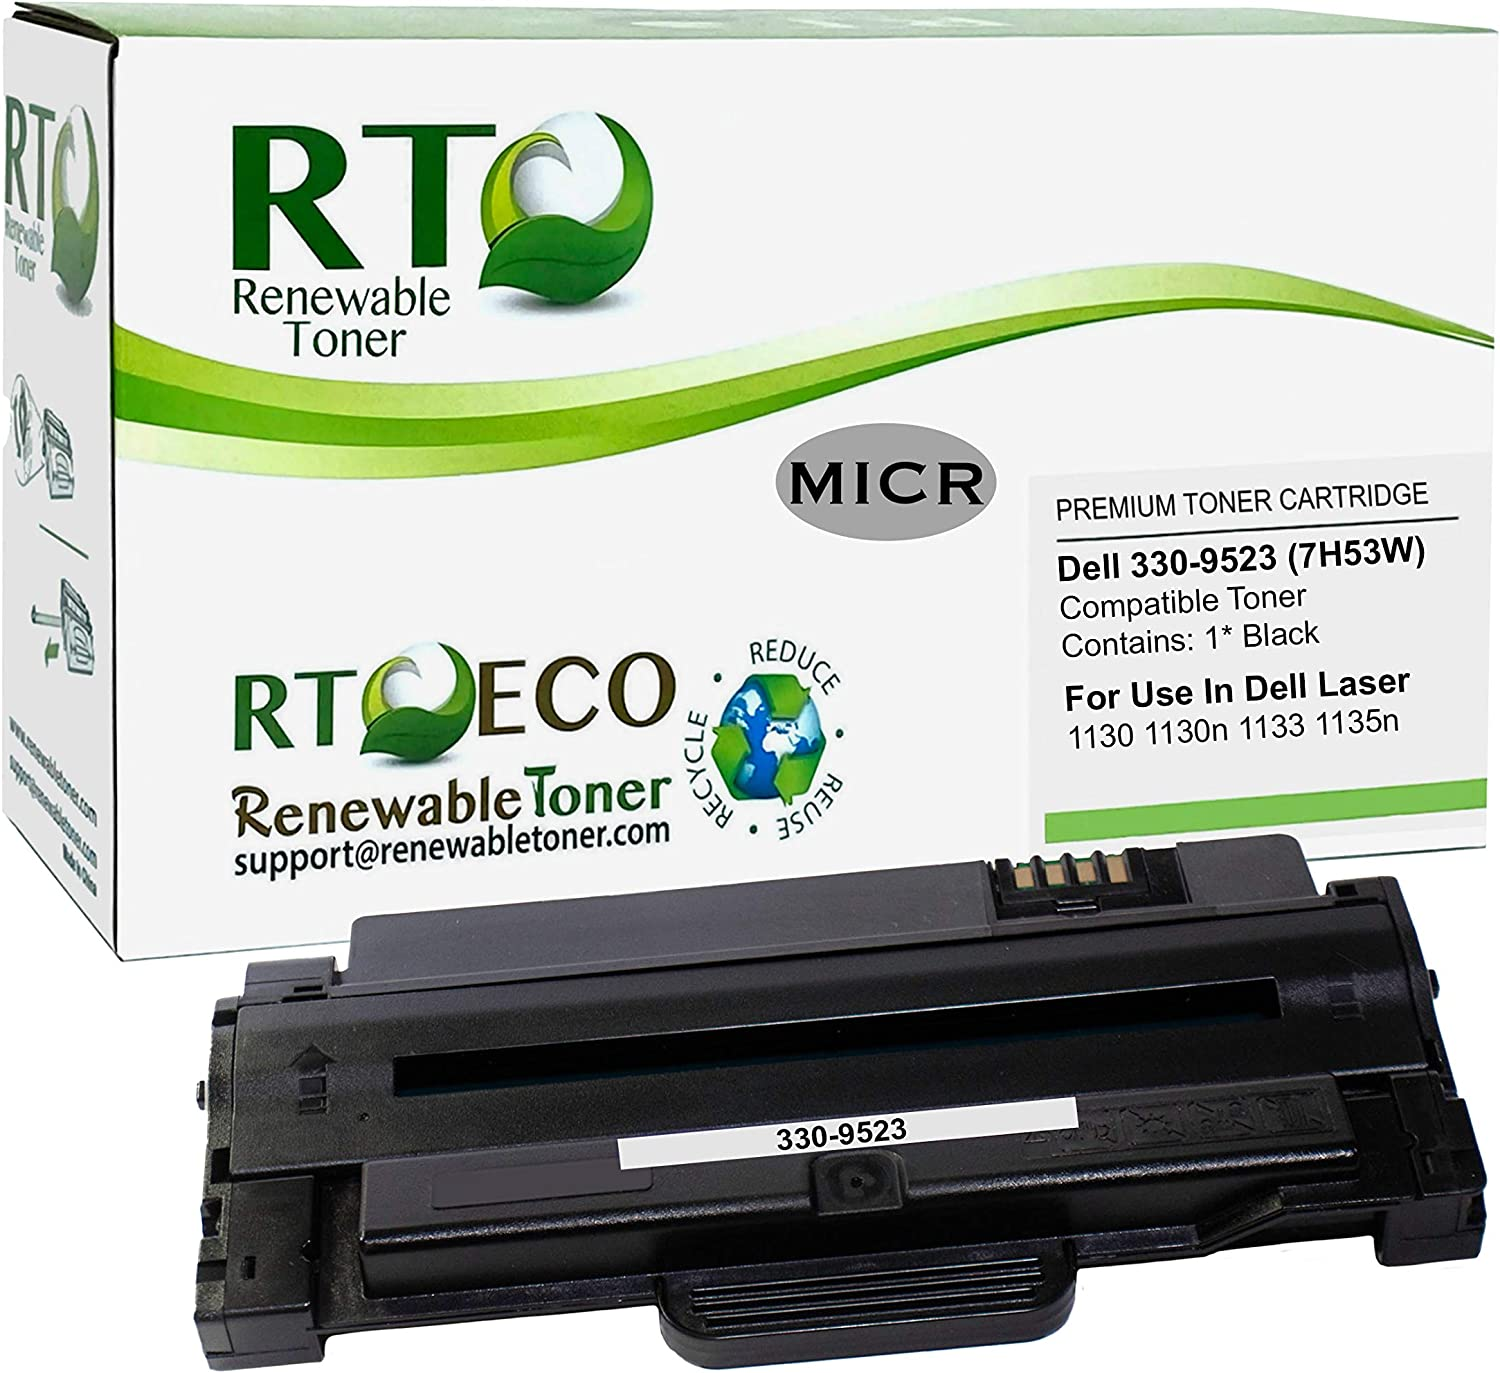 Renewable Toner Compatible MICR Toner Cartridge Replacement for Dell 330-9523 7H53W Laser 1130 1130n 1133 1135n